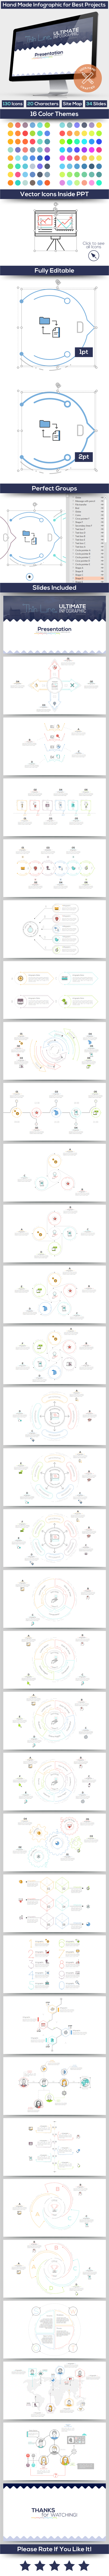 GraphicRiver Ultimate Thin Line Powerpoint Presentation 20936052